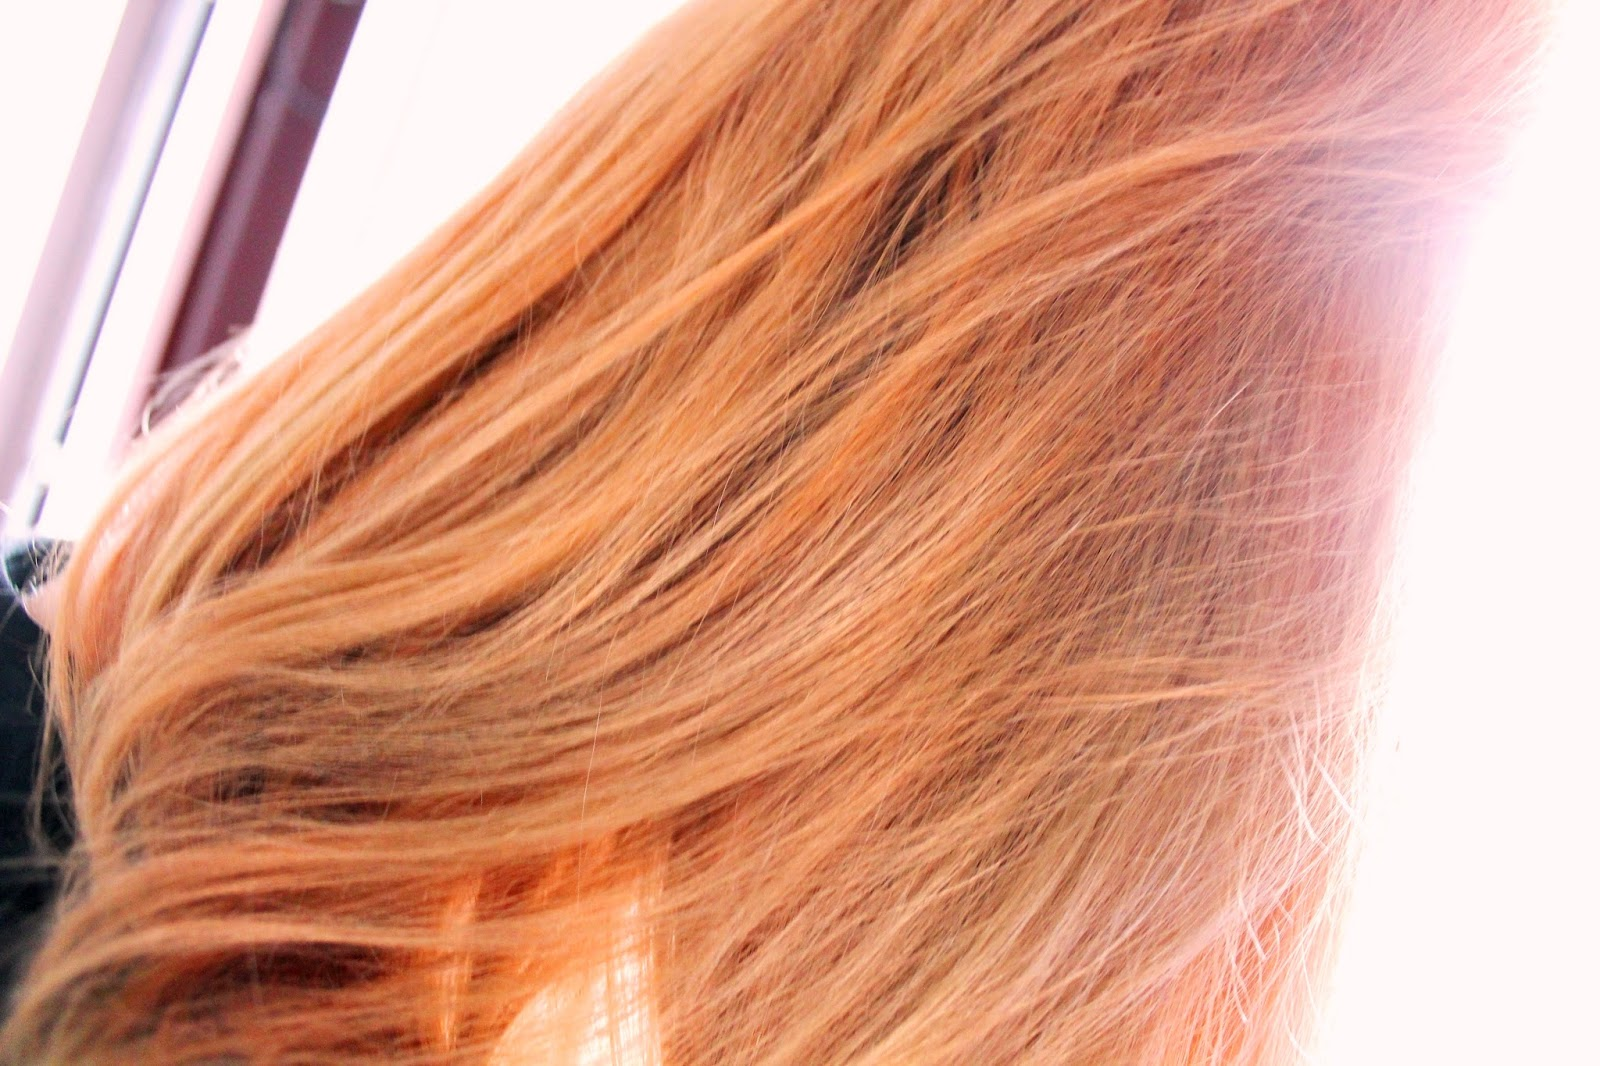 #ginger #head #red #hair #l'oreal #paris #prodigy #sävy #color